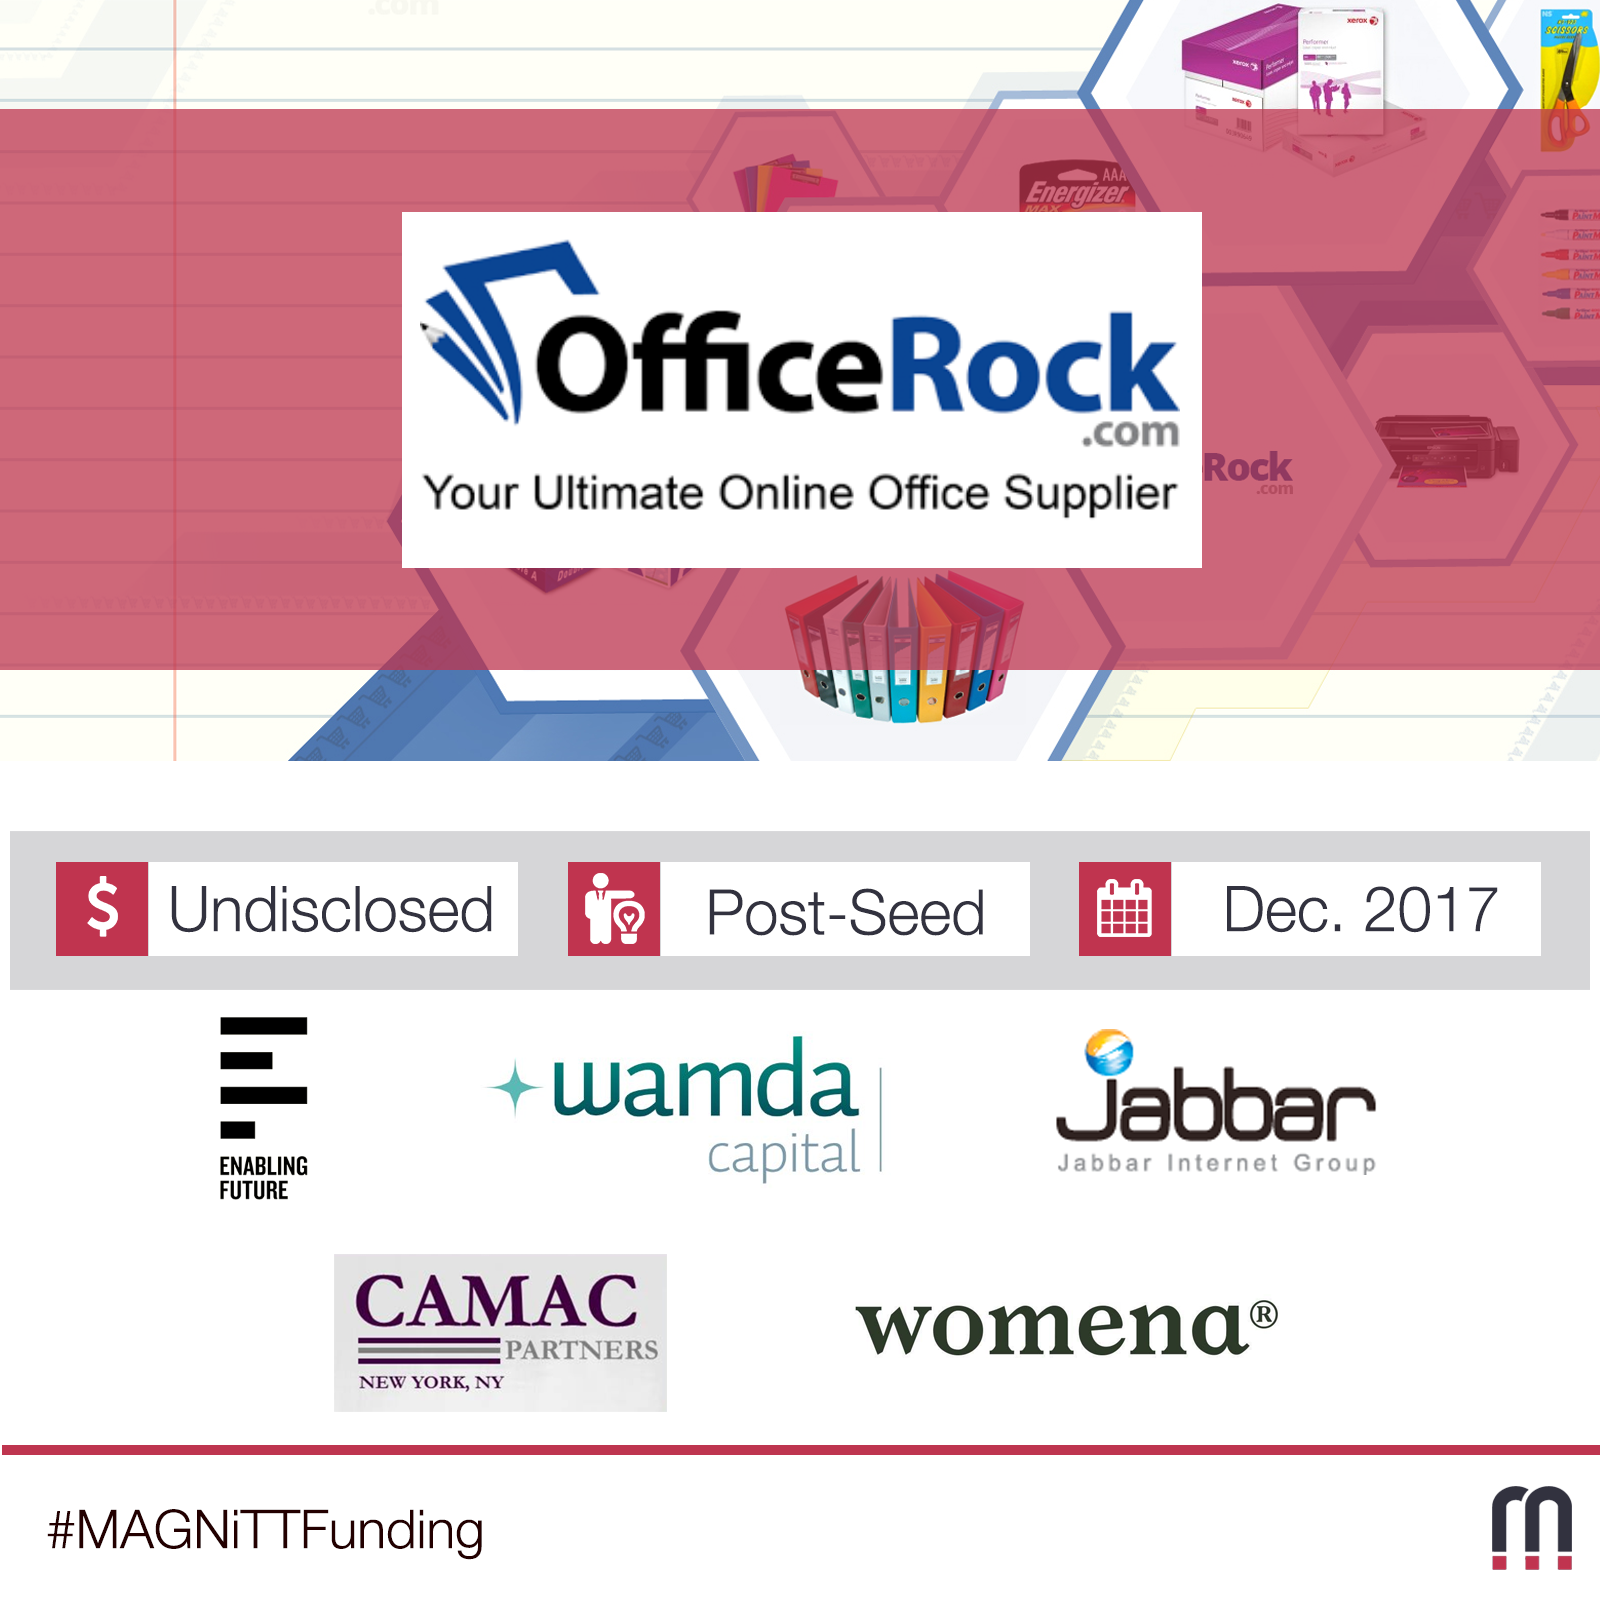 OfficeRock.com Raises Funds From Enabling Future, Jabbar Internet Group, And Other Investors